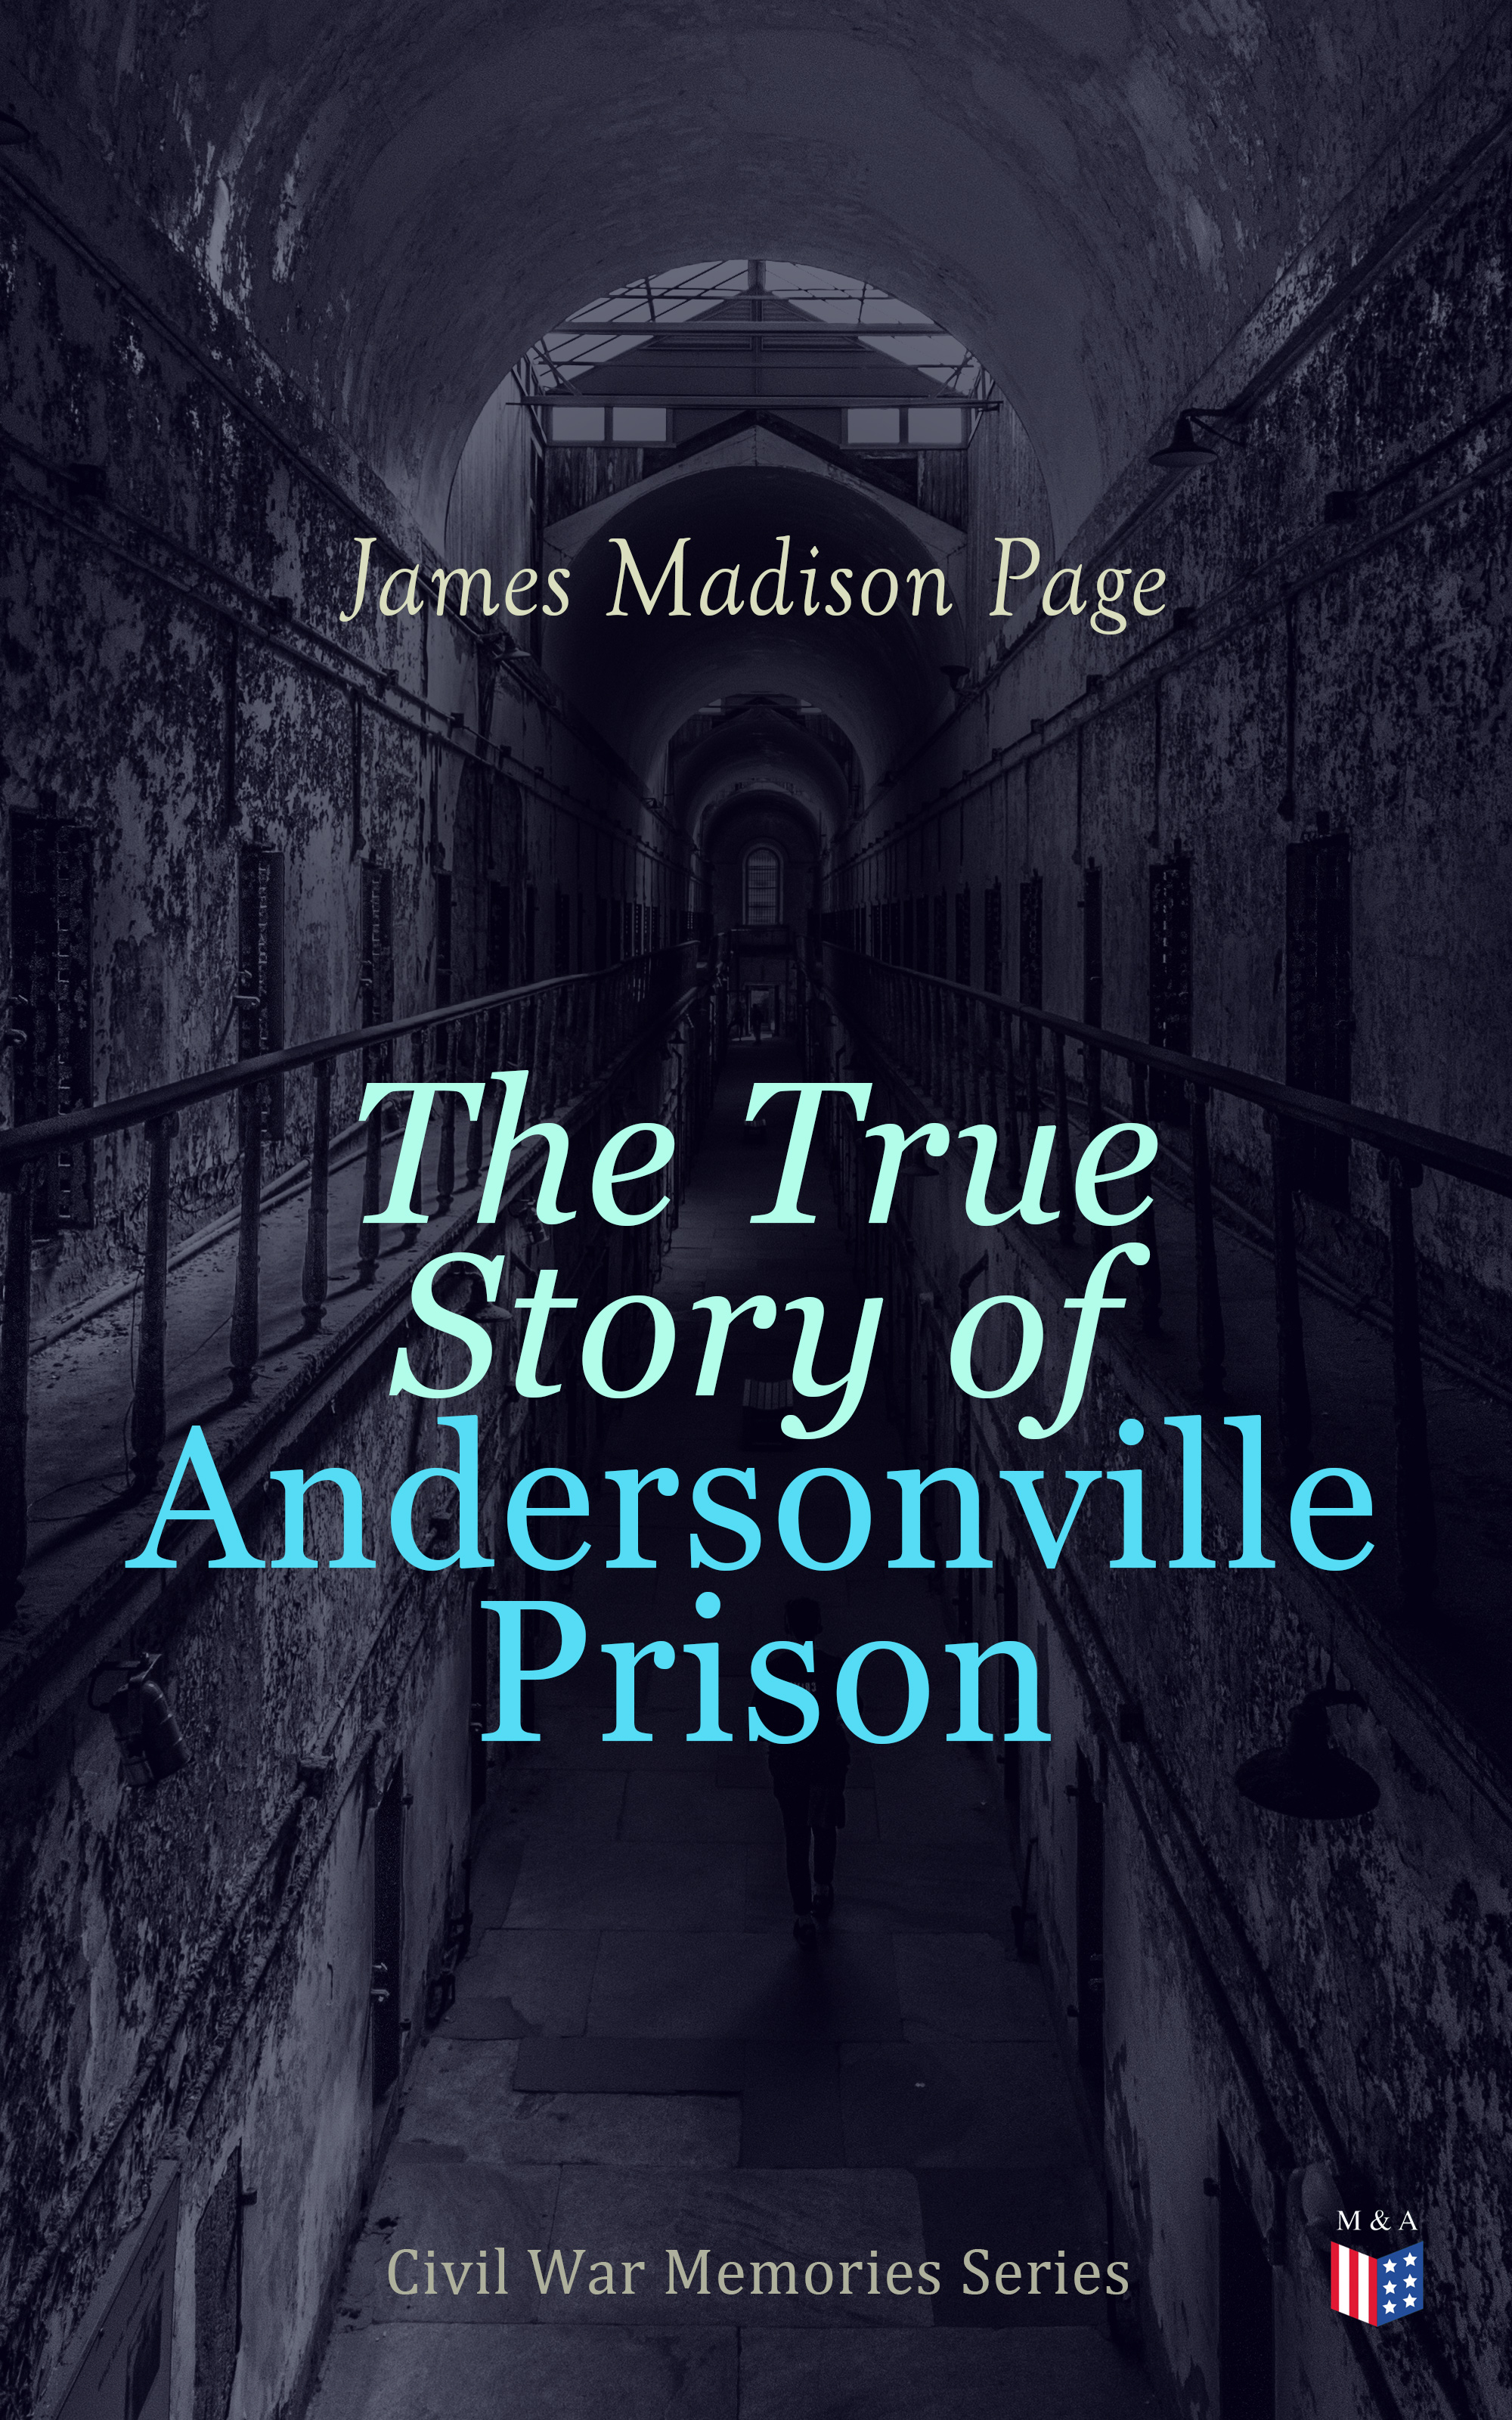 James Madison Page The True Story of Andersonville Prison catherine zueva the poetry of spring page 7 page 7 page 9